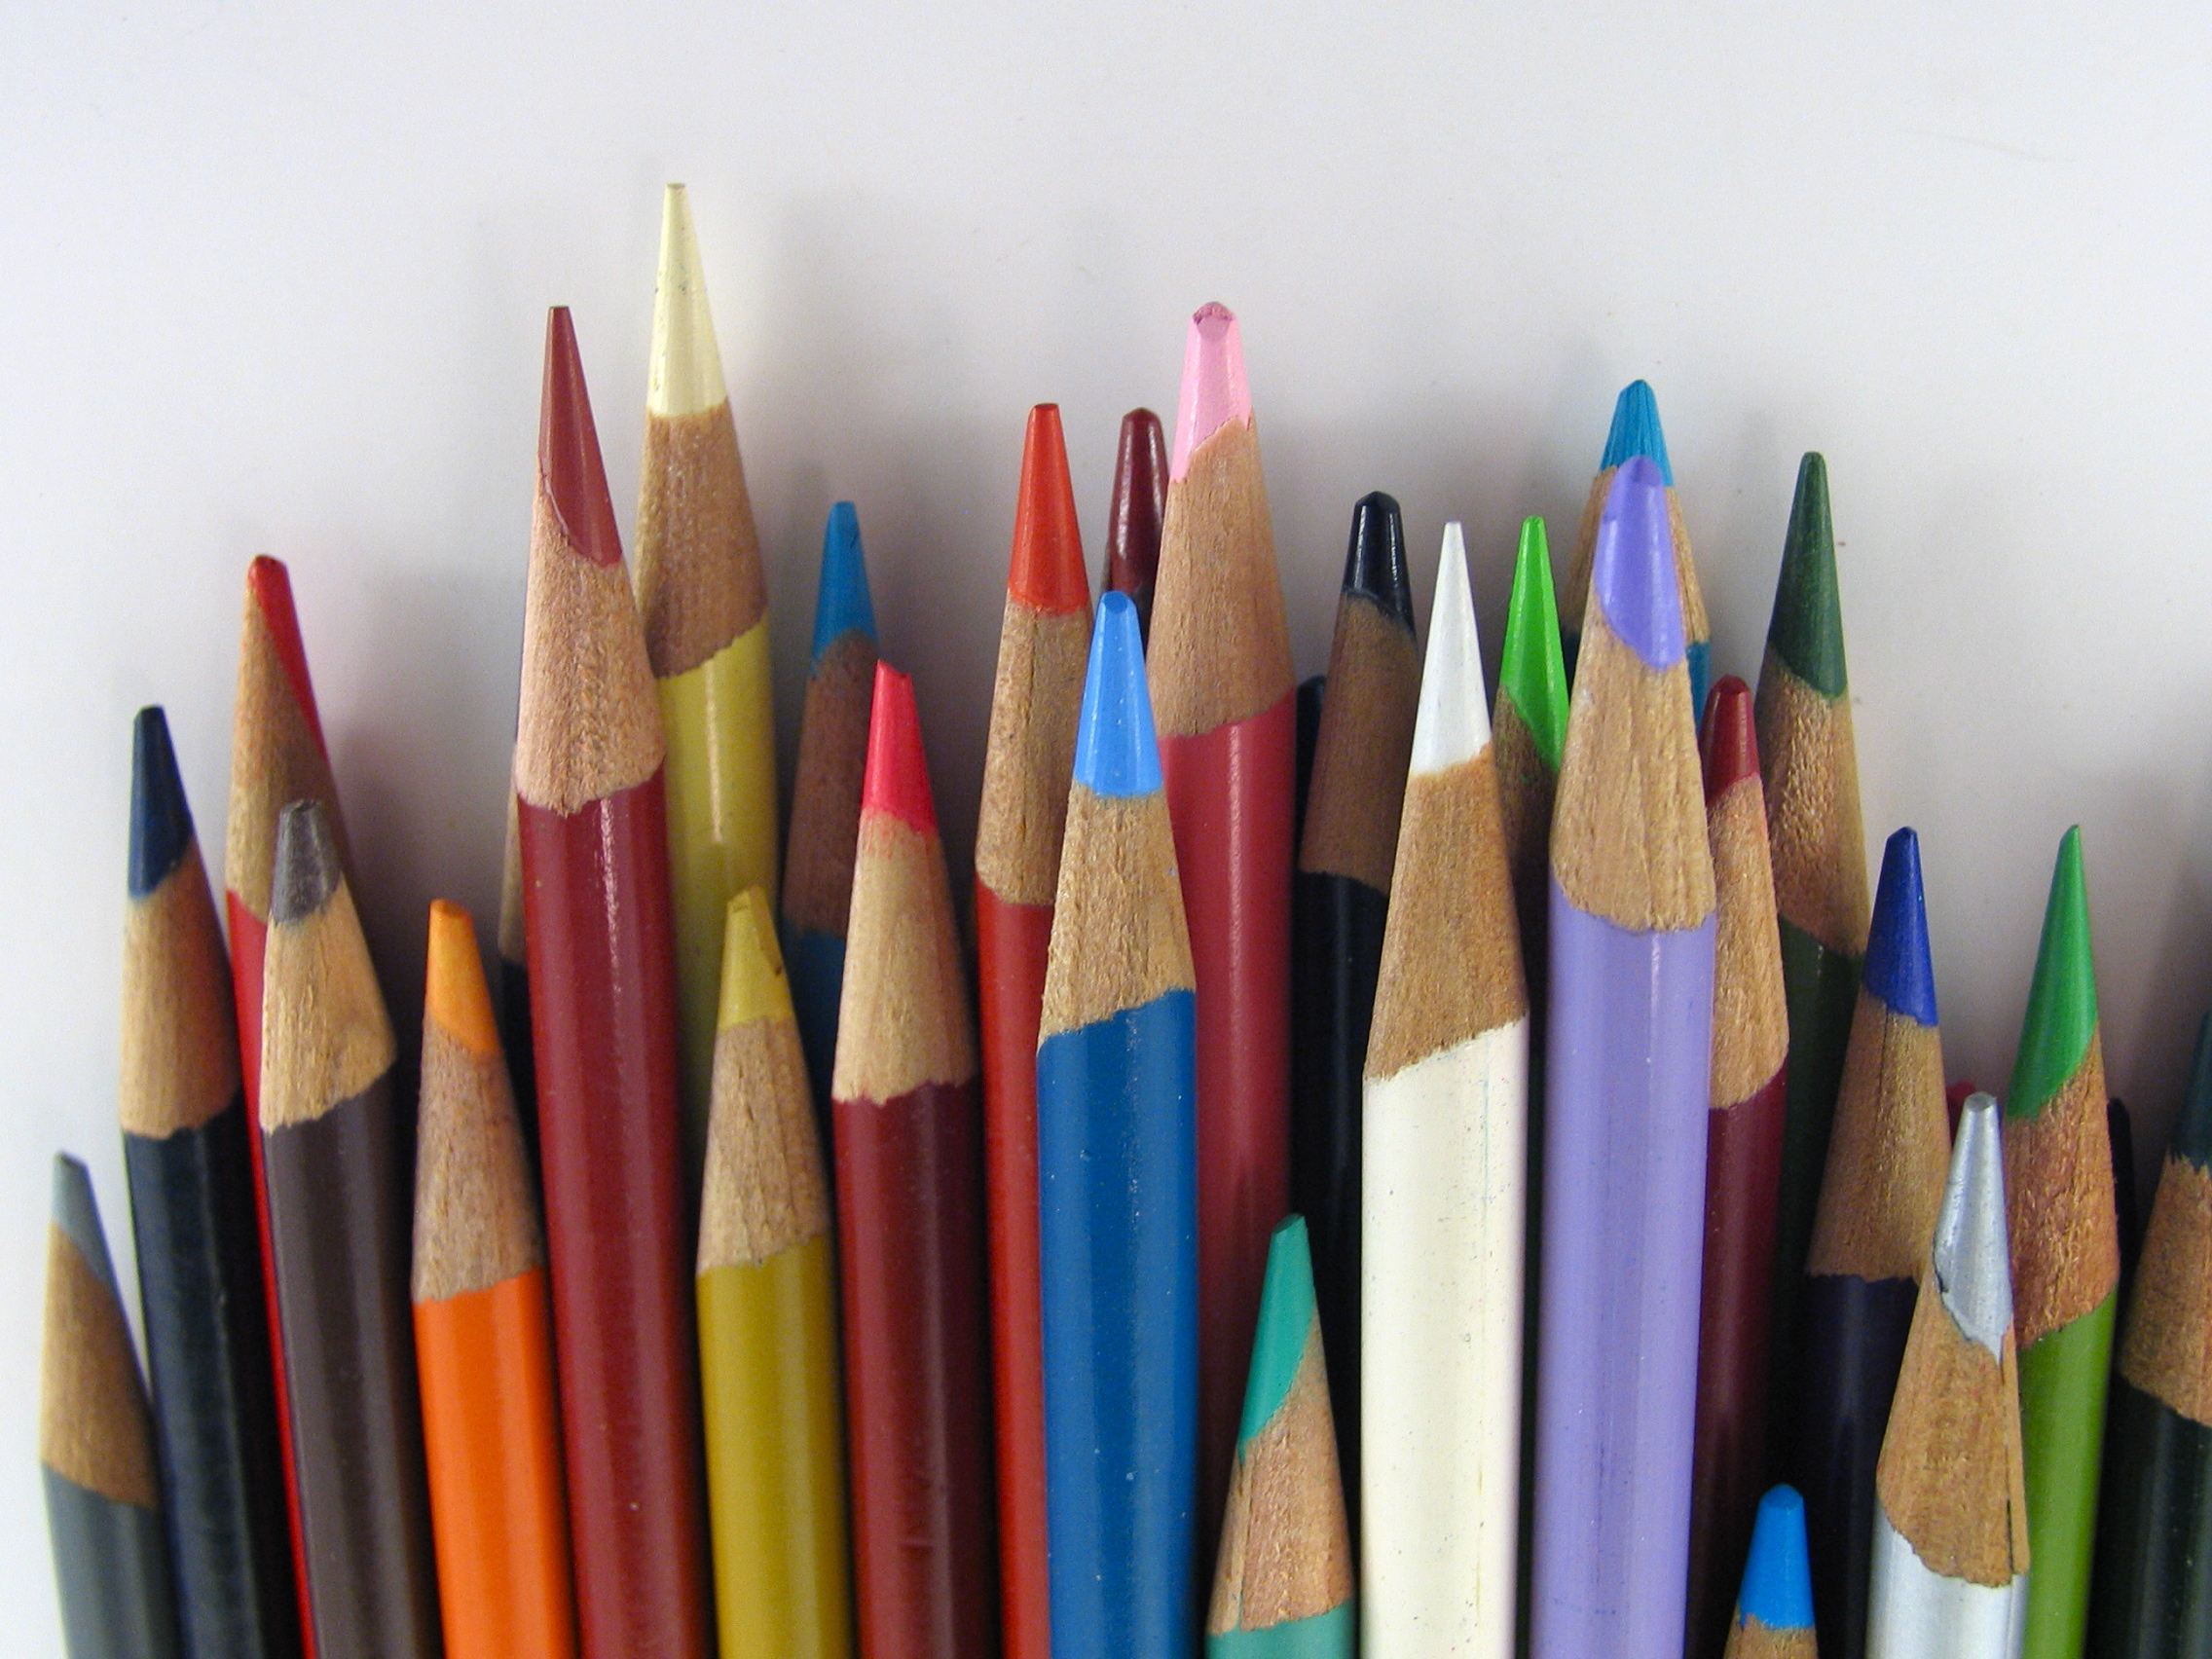 crayon Pencils pencil HD Wallpaper